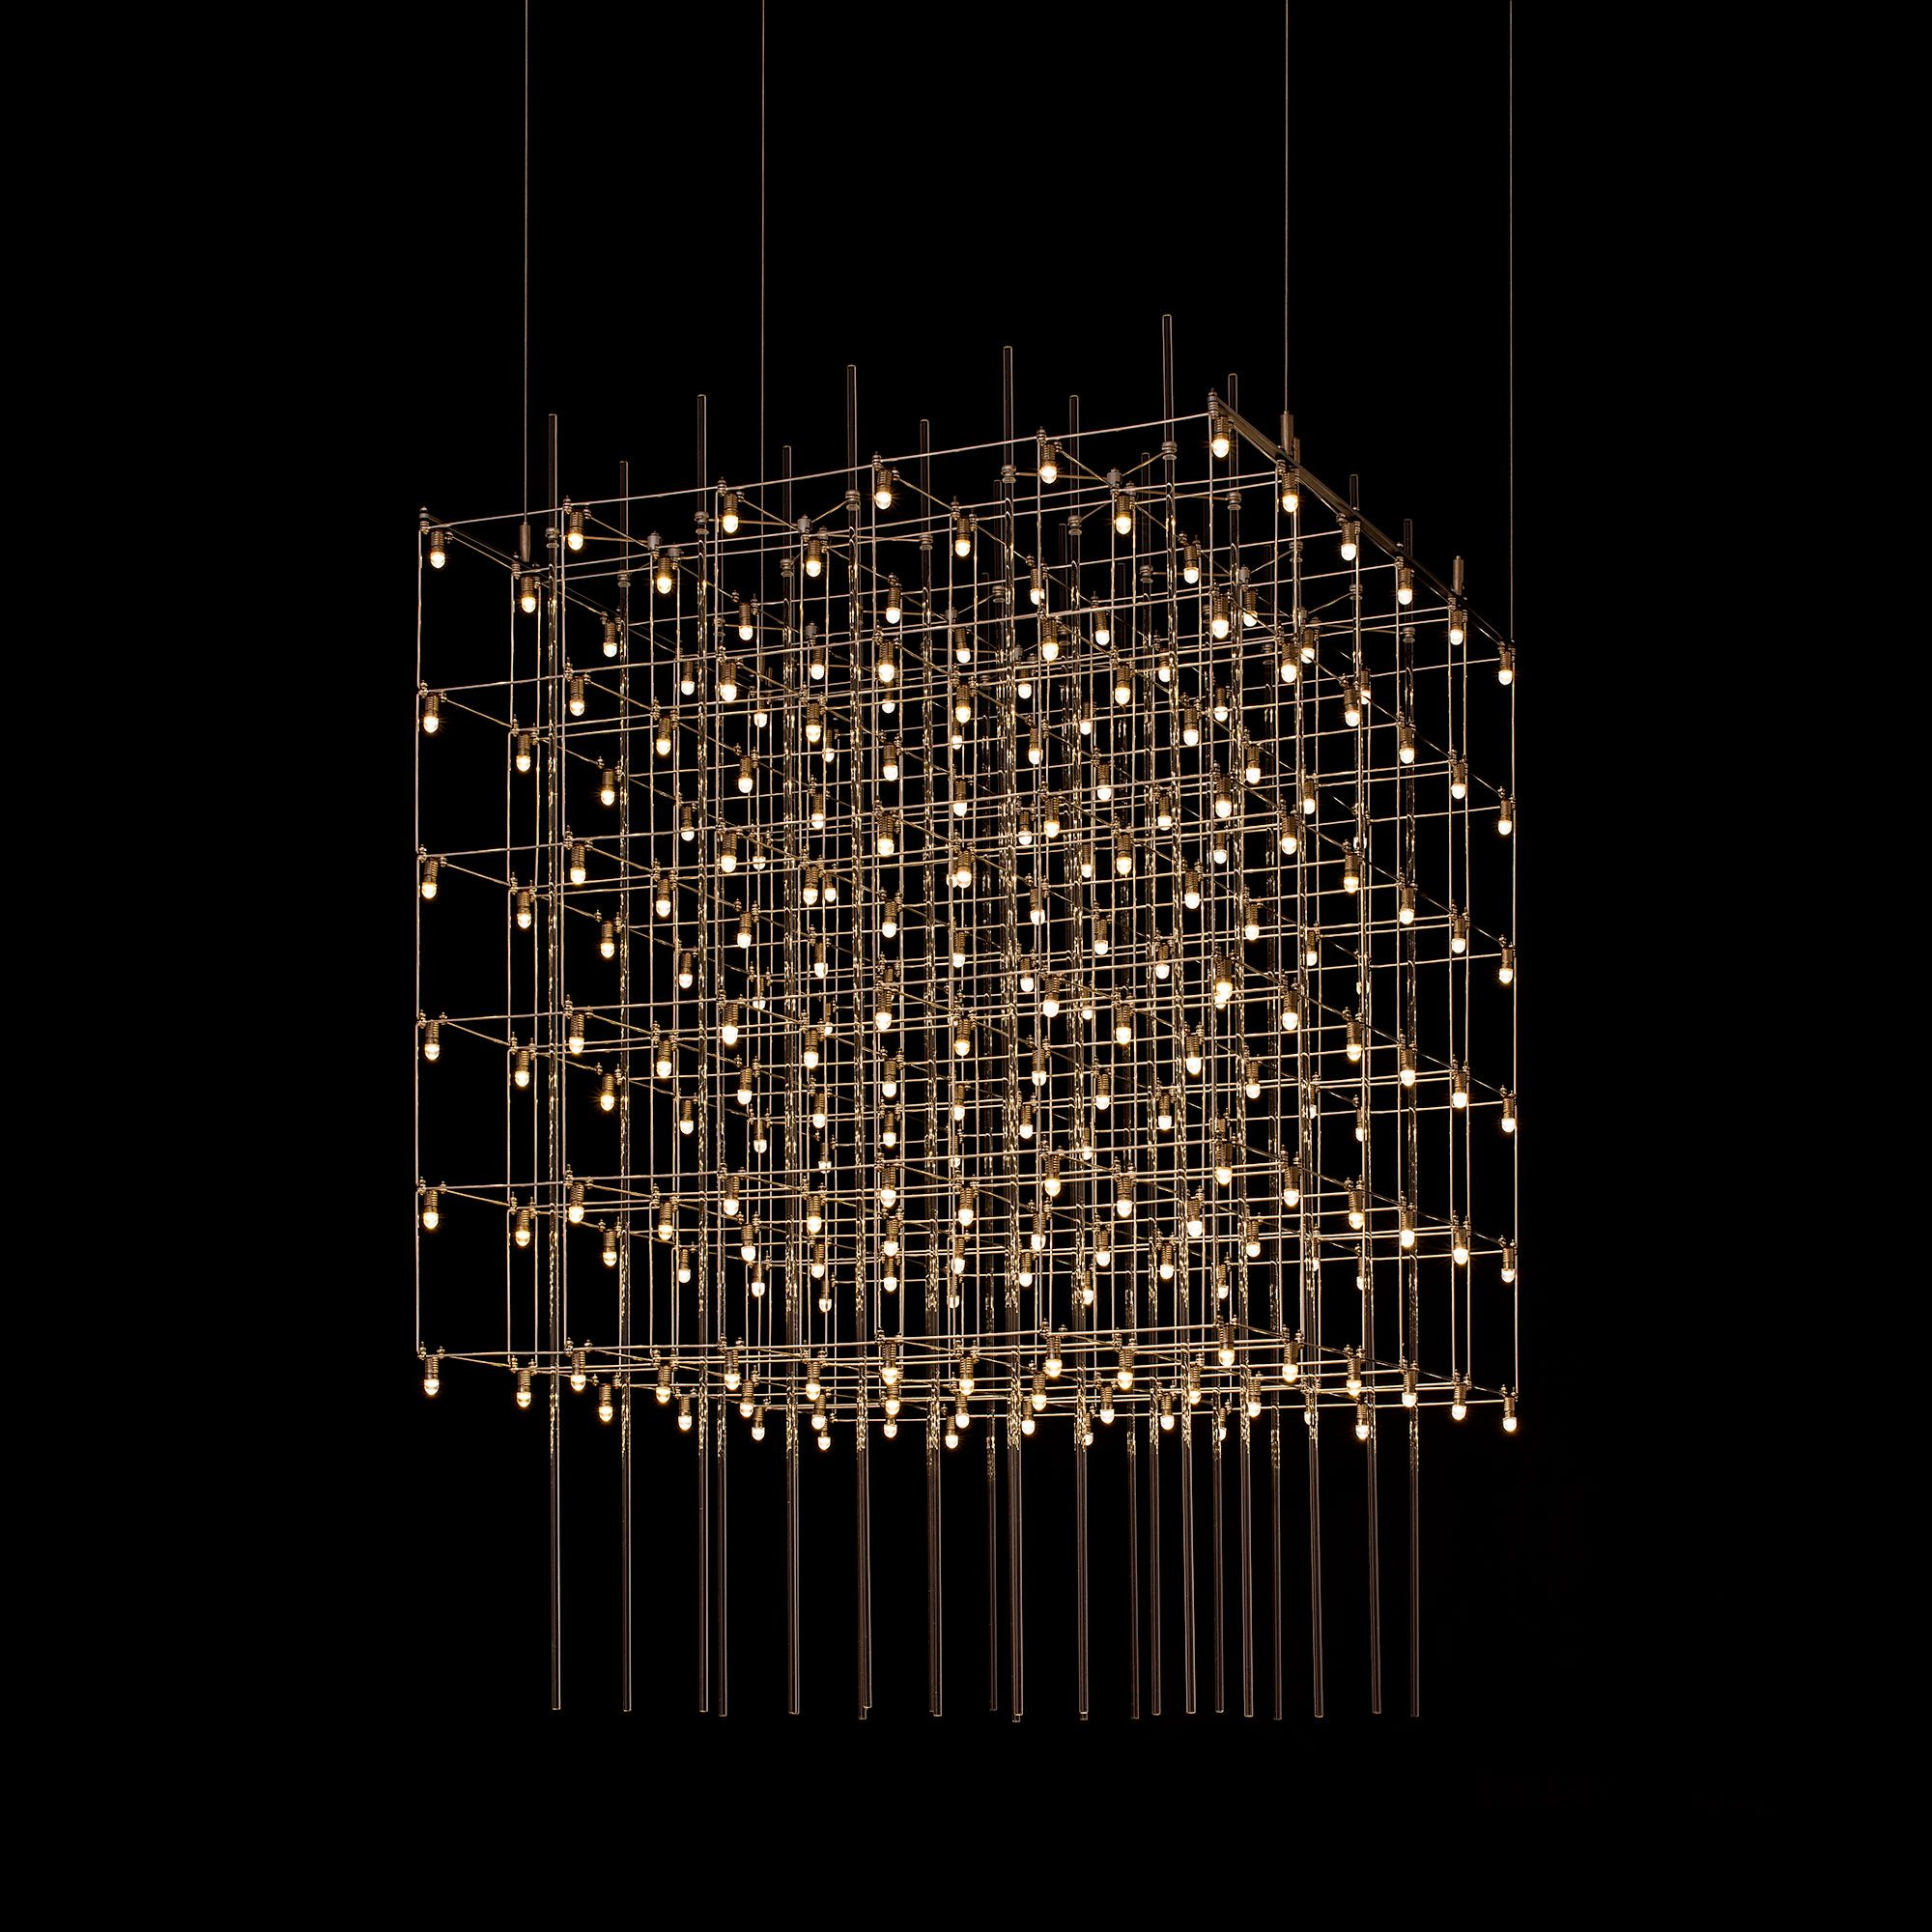 Universo Square Suspension By Edge Lighting Univ 25 L1 Sn Outdoor Decorative Lights Contemporary Recessed Lighting Modern Chandelier